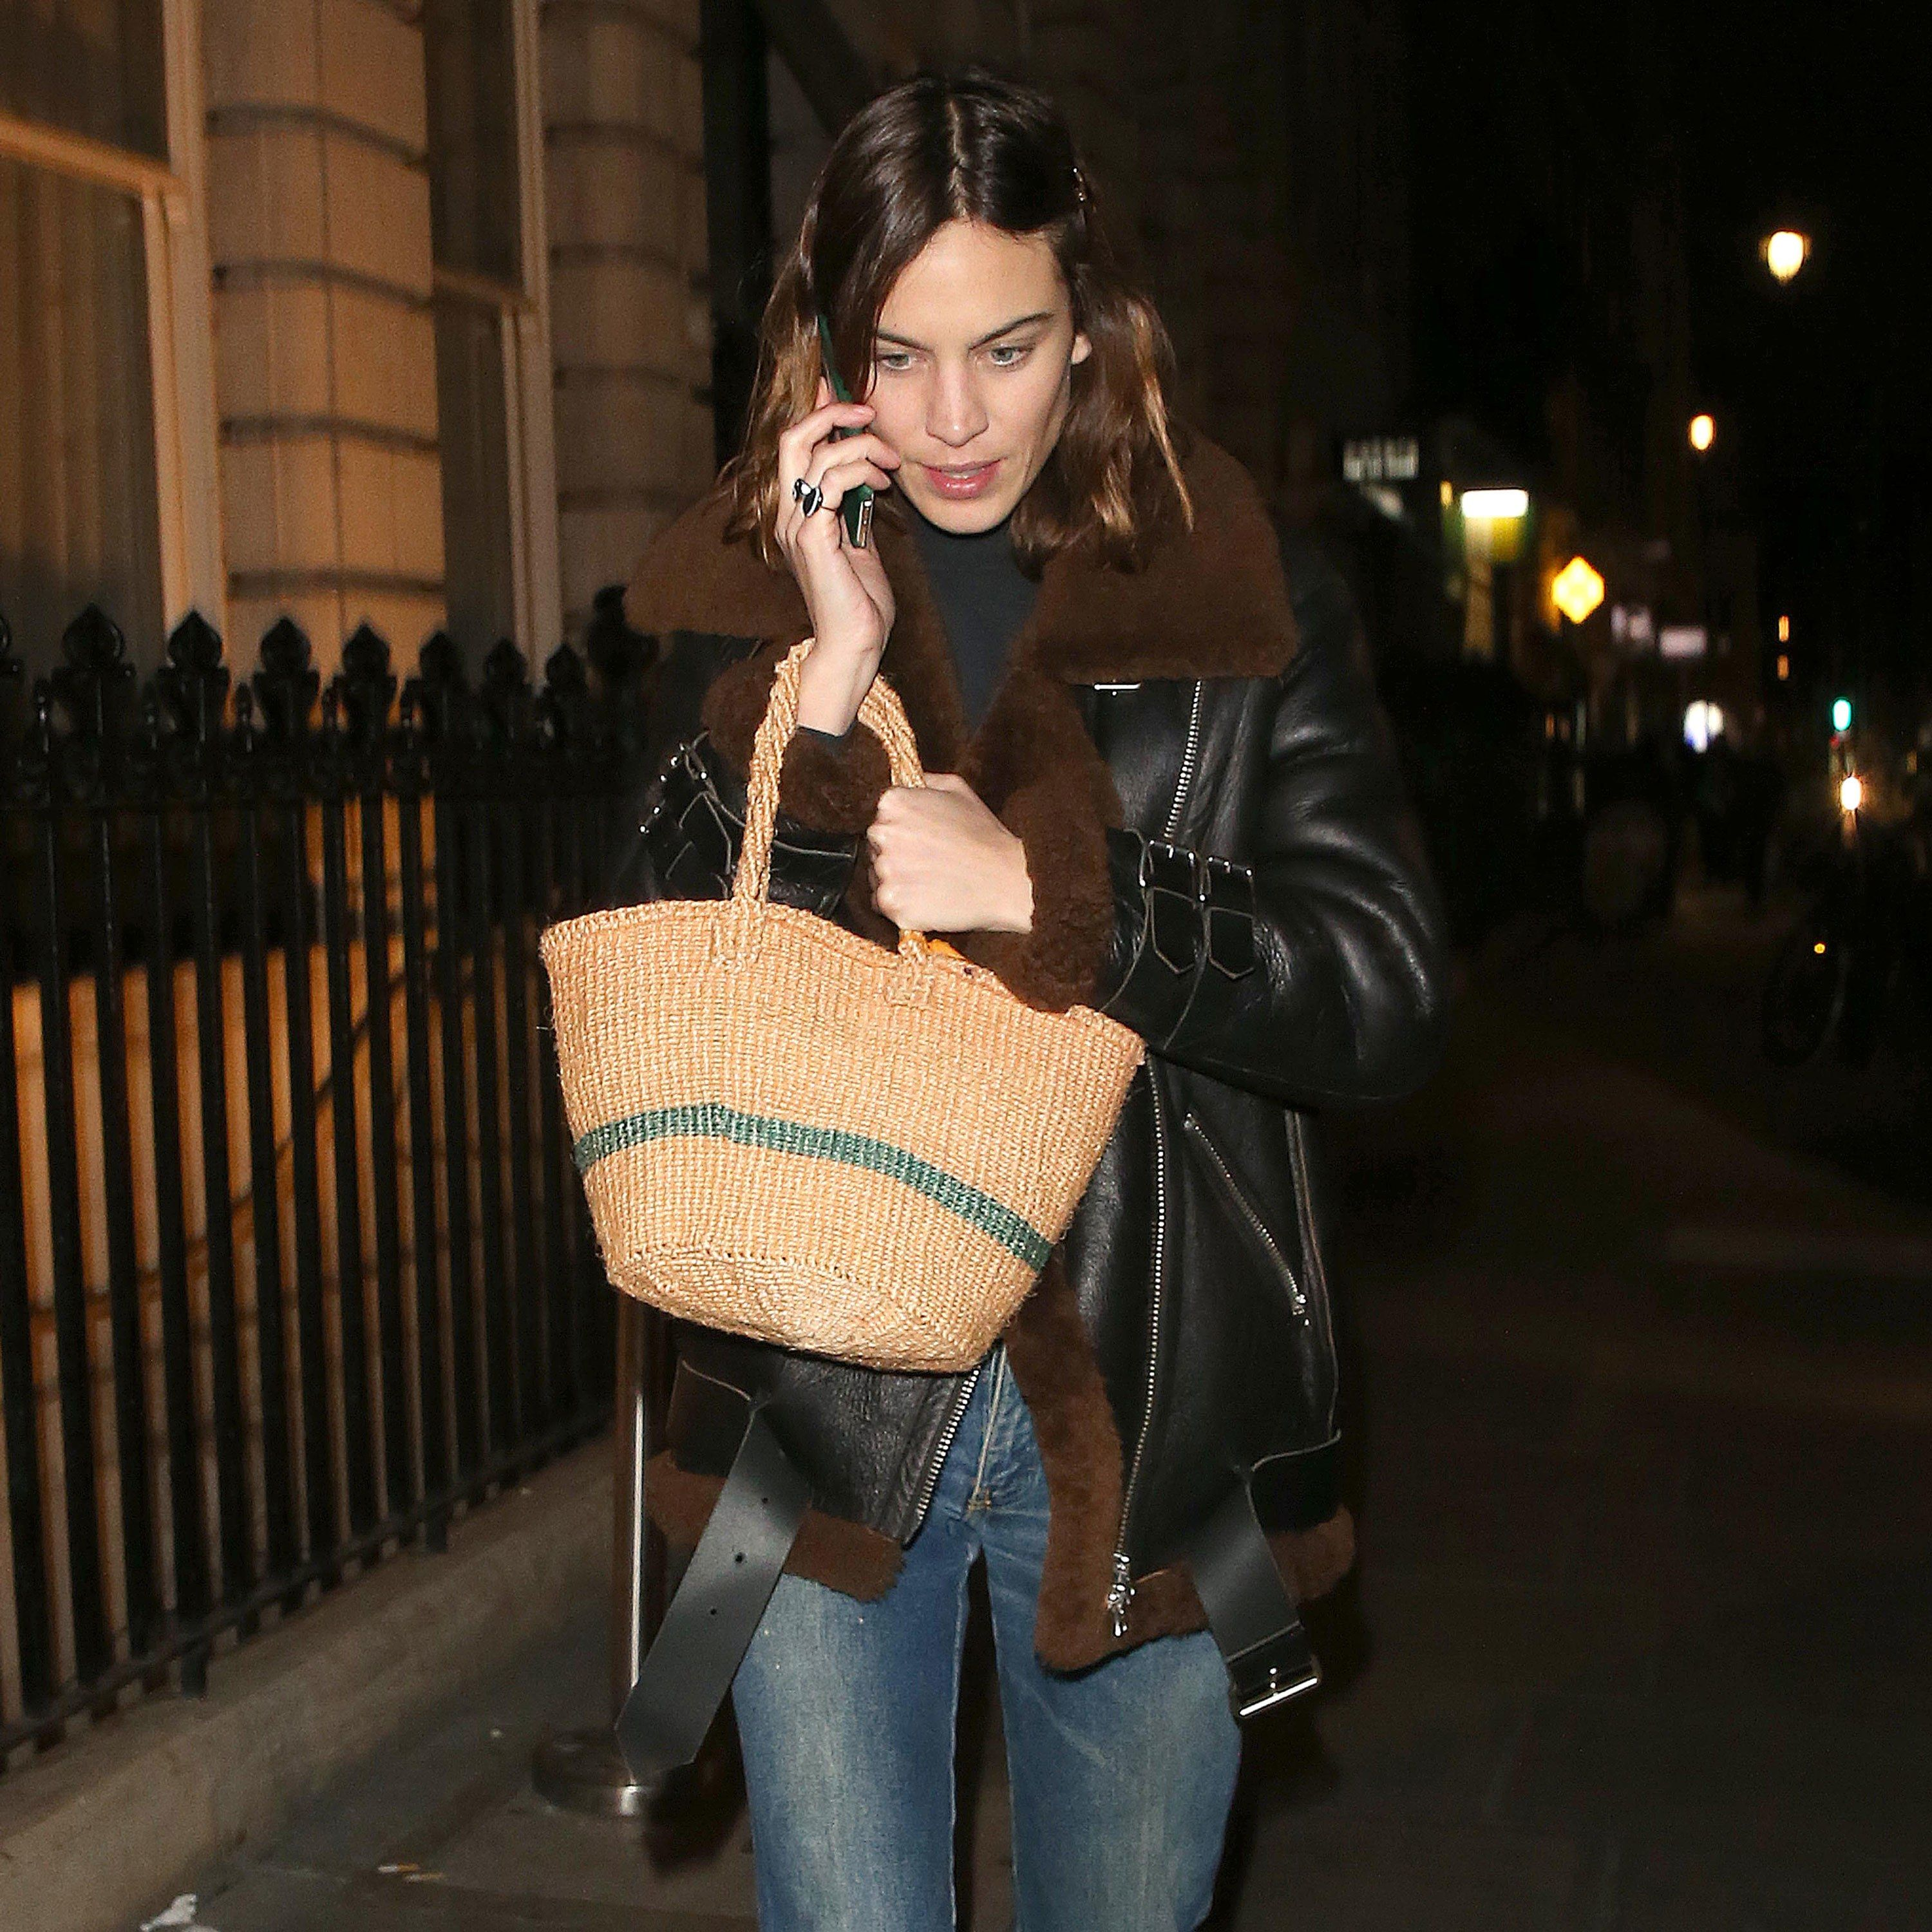 14d3e7bfc95c Alexa Chung s Straw Tote Bag Is a Style Move Jane Birkin Would ...